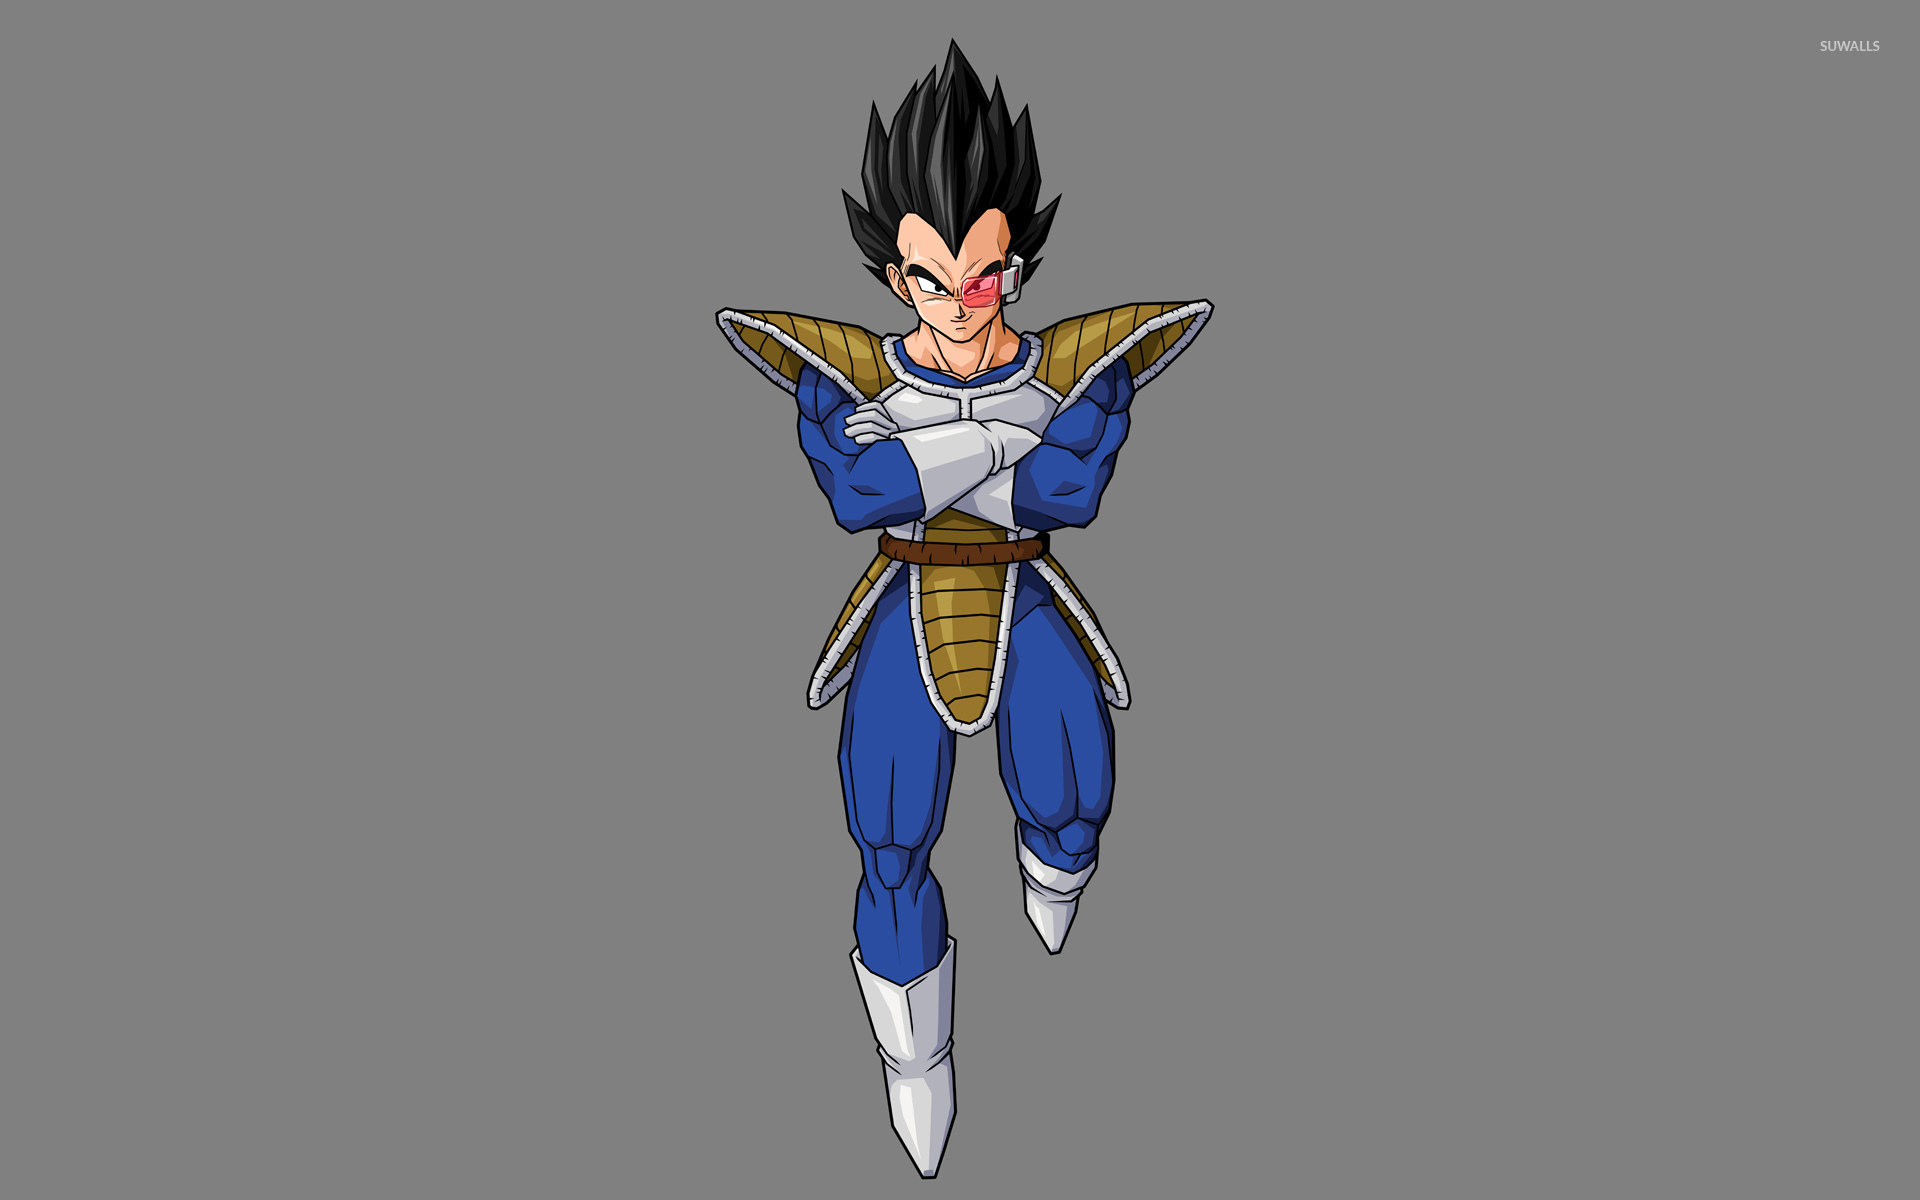 vegeta - dragon ball z [2] wallpaper - anime wallpapers - #7120